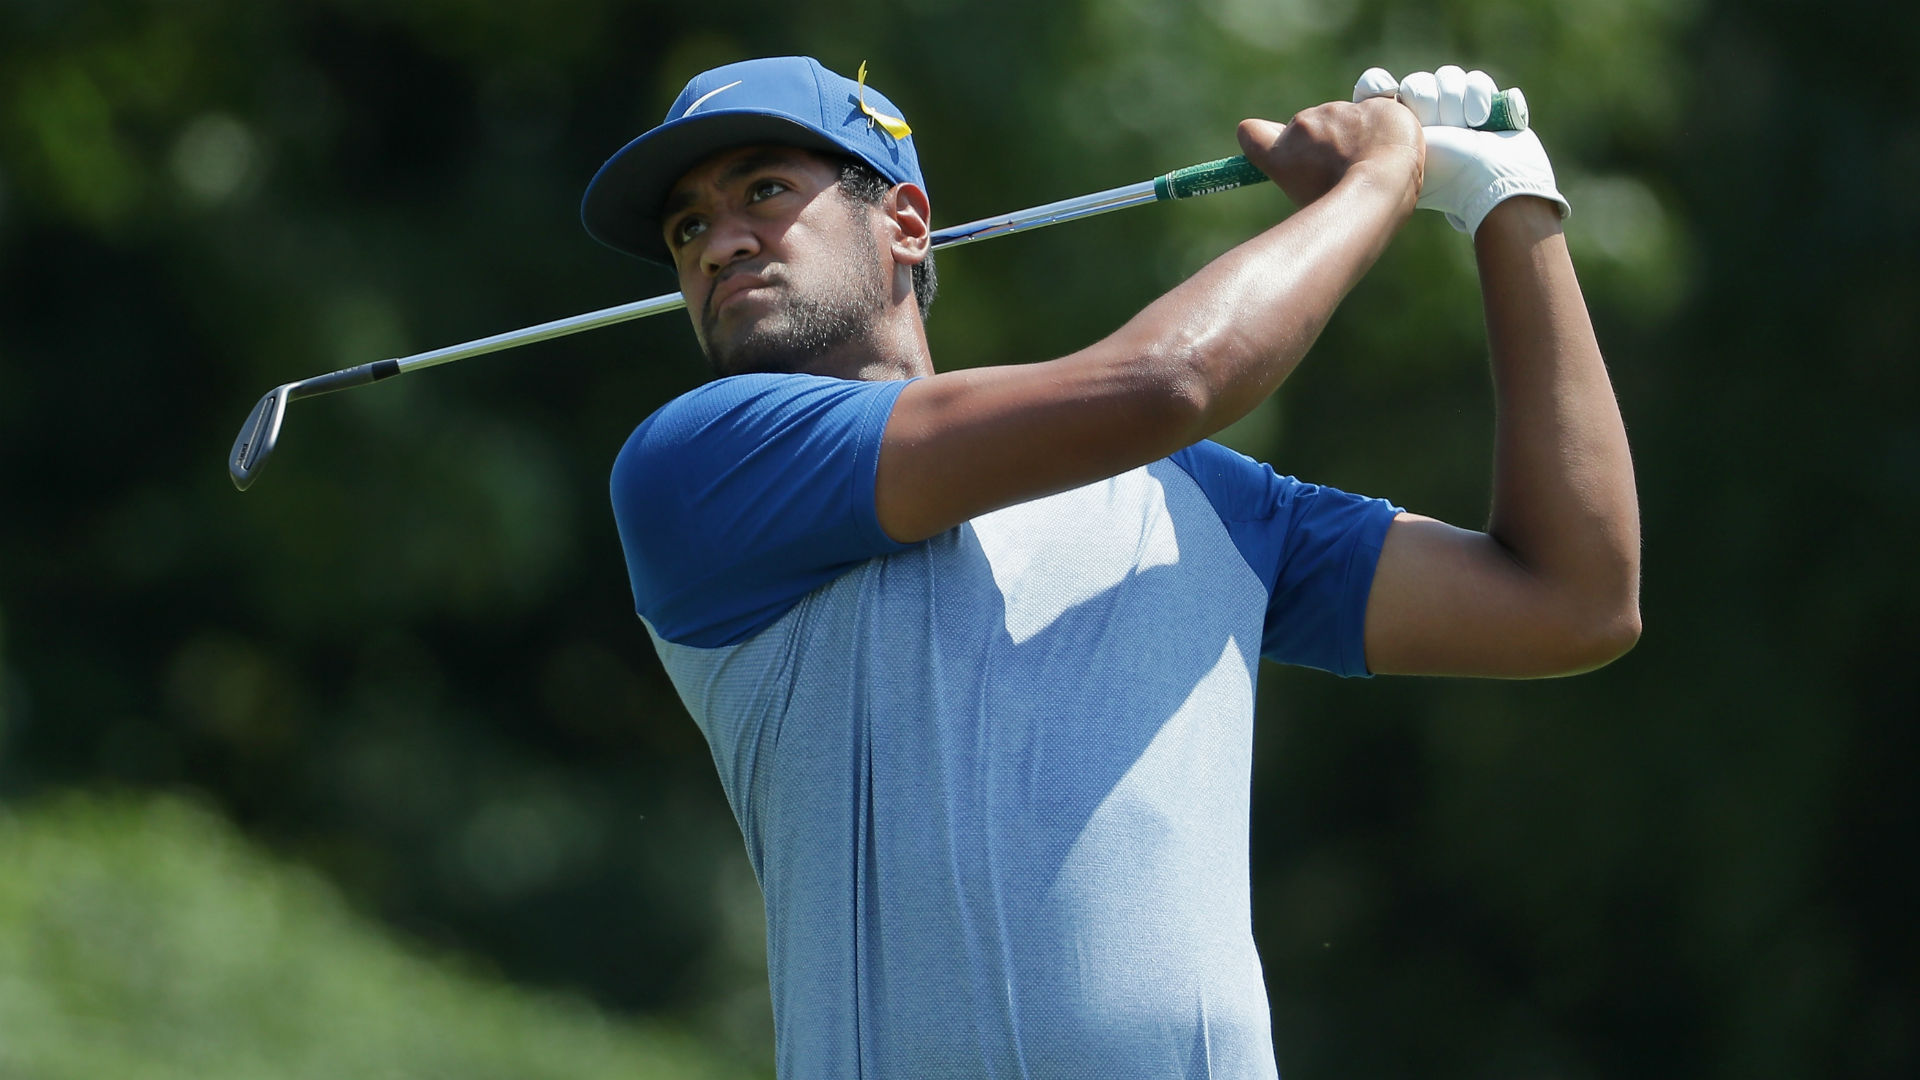 PGA Championship 2018: Tony Finau on fire through front 9 in Round 2